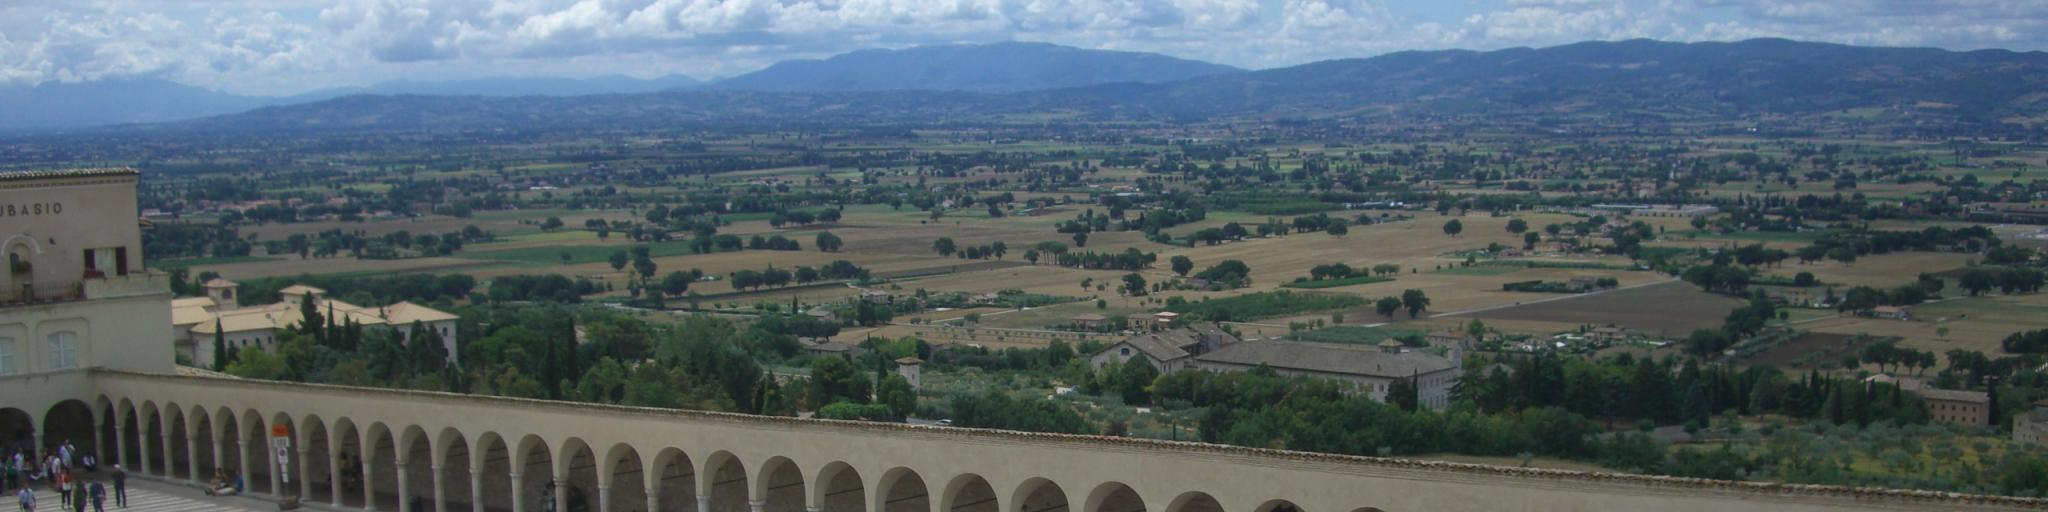 The arches of Basilica of Saint Francis of Assisi with the Italian town of Assisi in the background